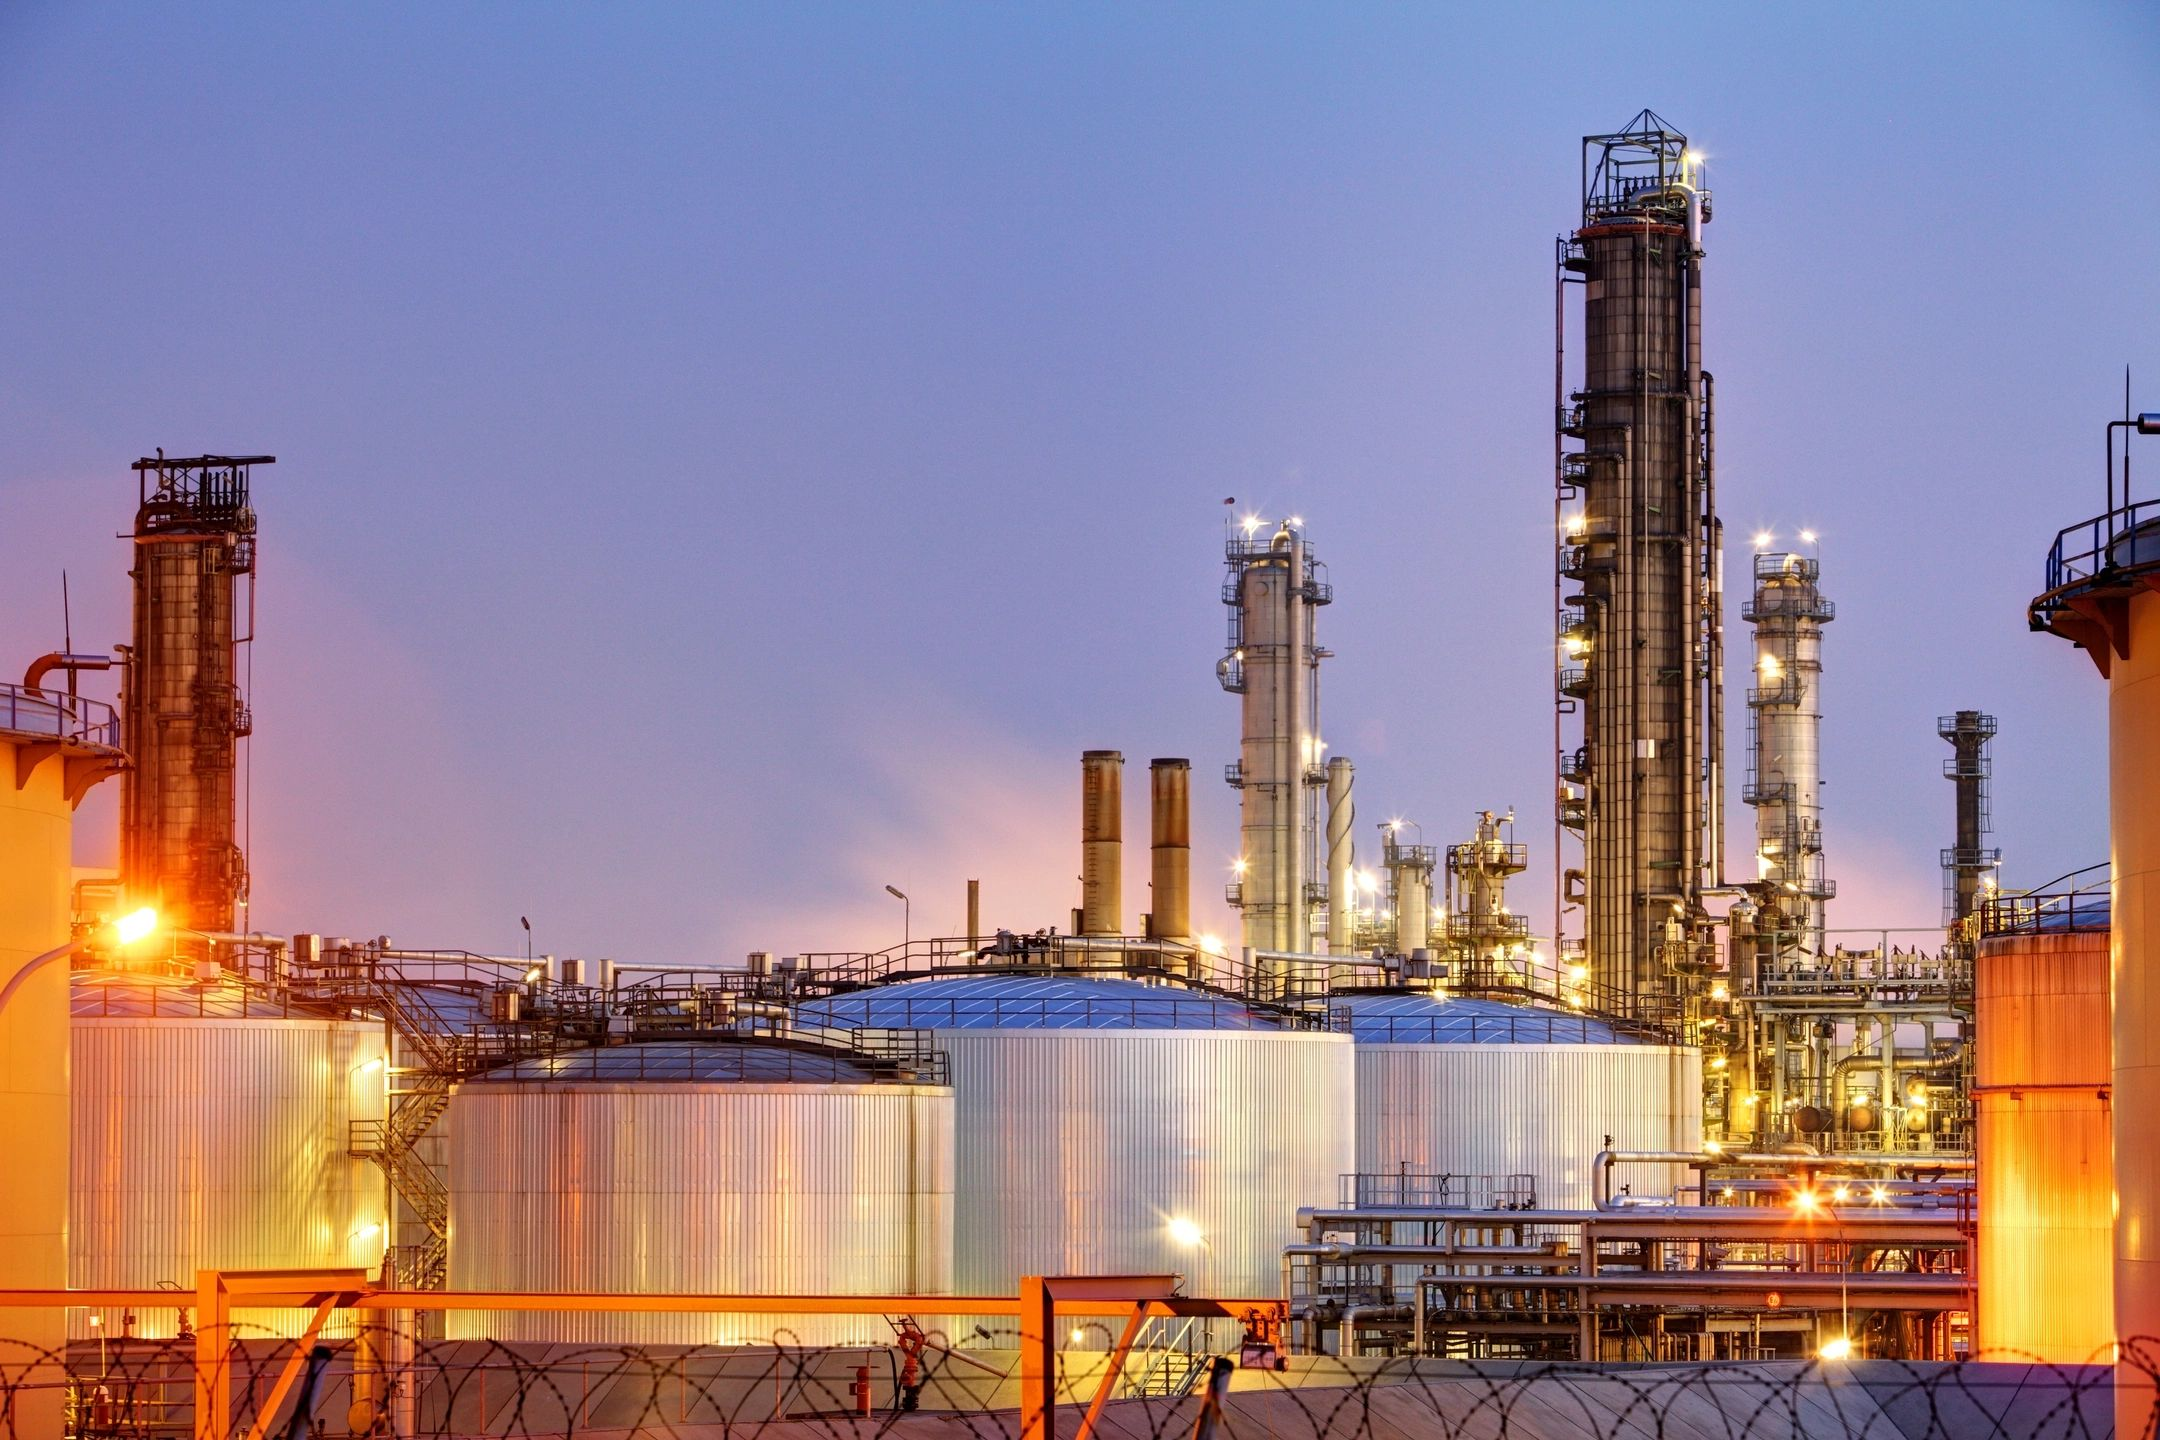 U.S. Homeland Security Says Chemical Industry is Part of Essential Critical Infrastructure